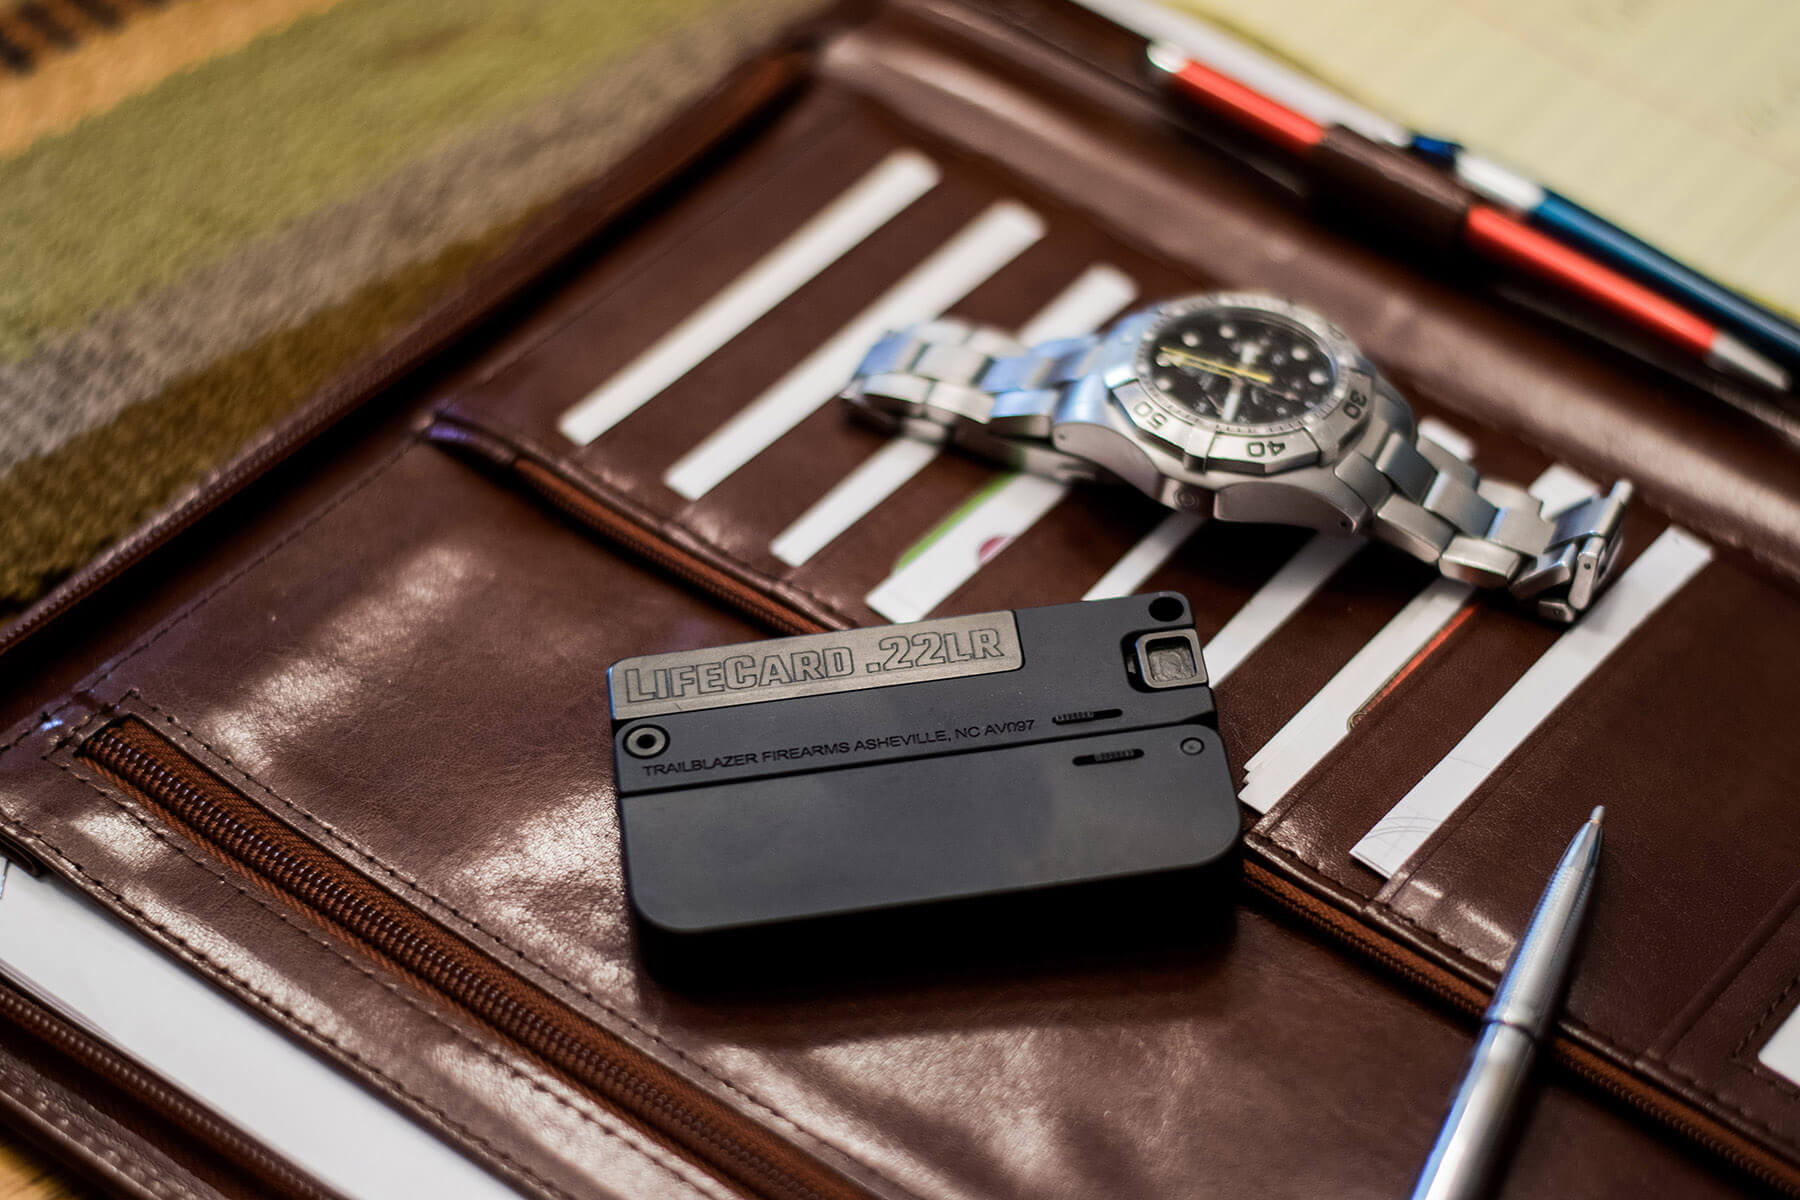 trailblazer-lifecard-on-briefcase-with-watch